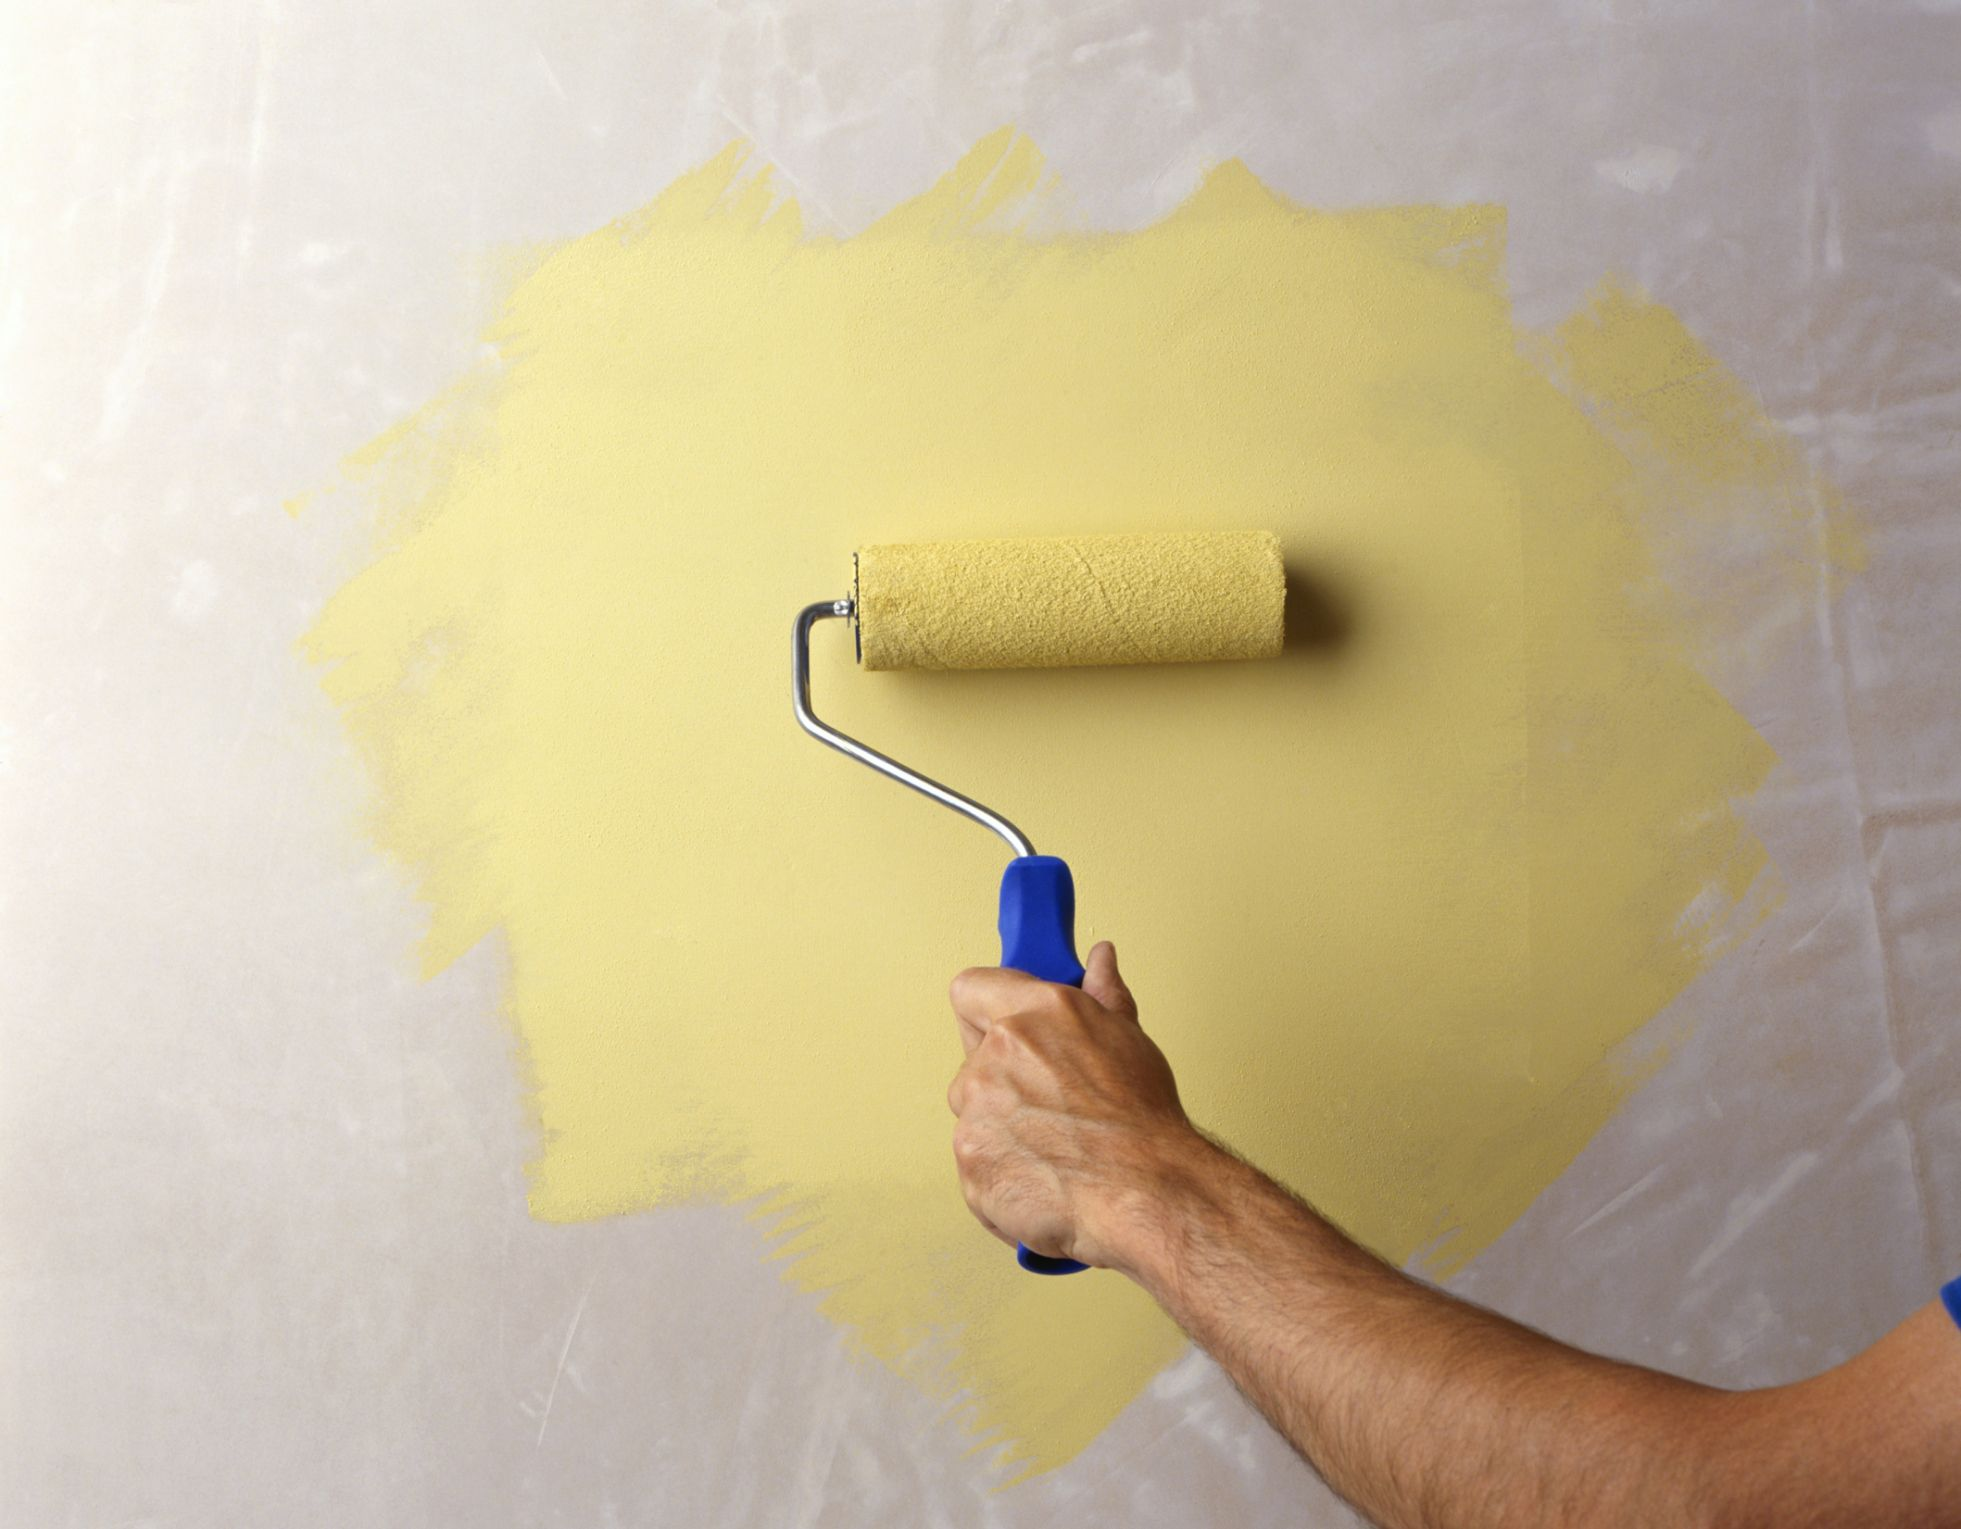 Interior wall covering ideas best paint roller cover for each surface and use dailygadgetfo Image collections